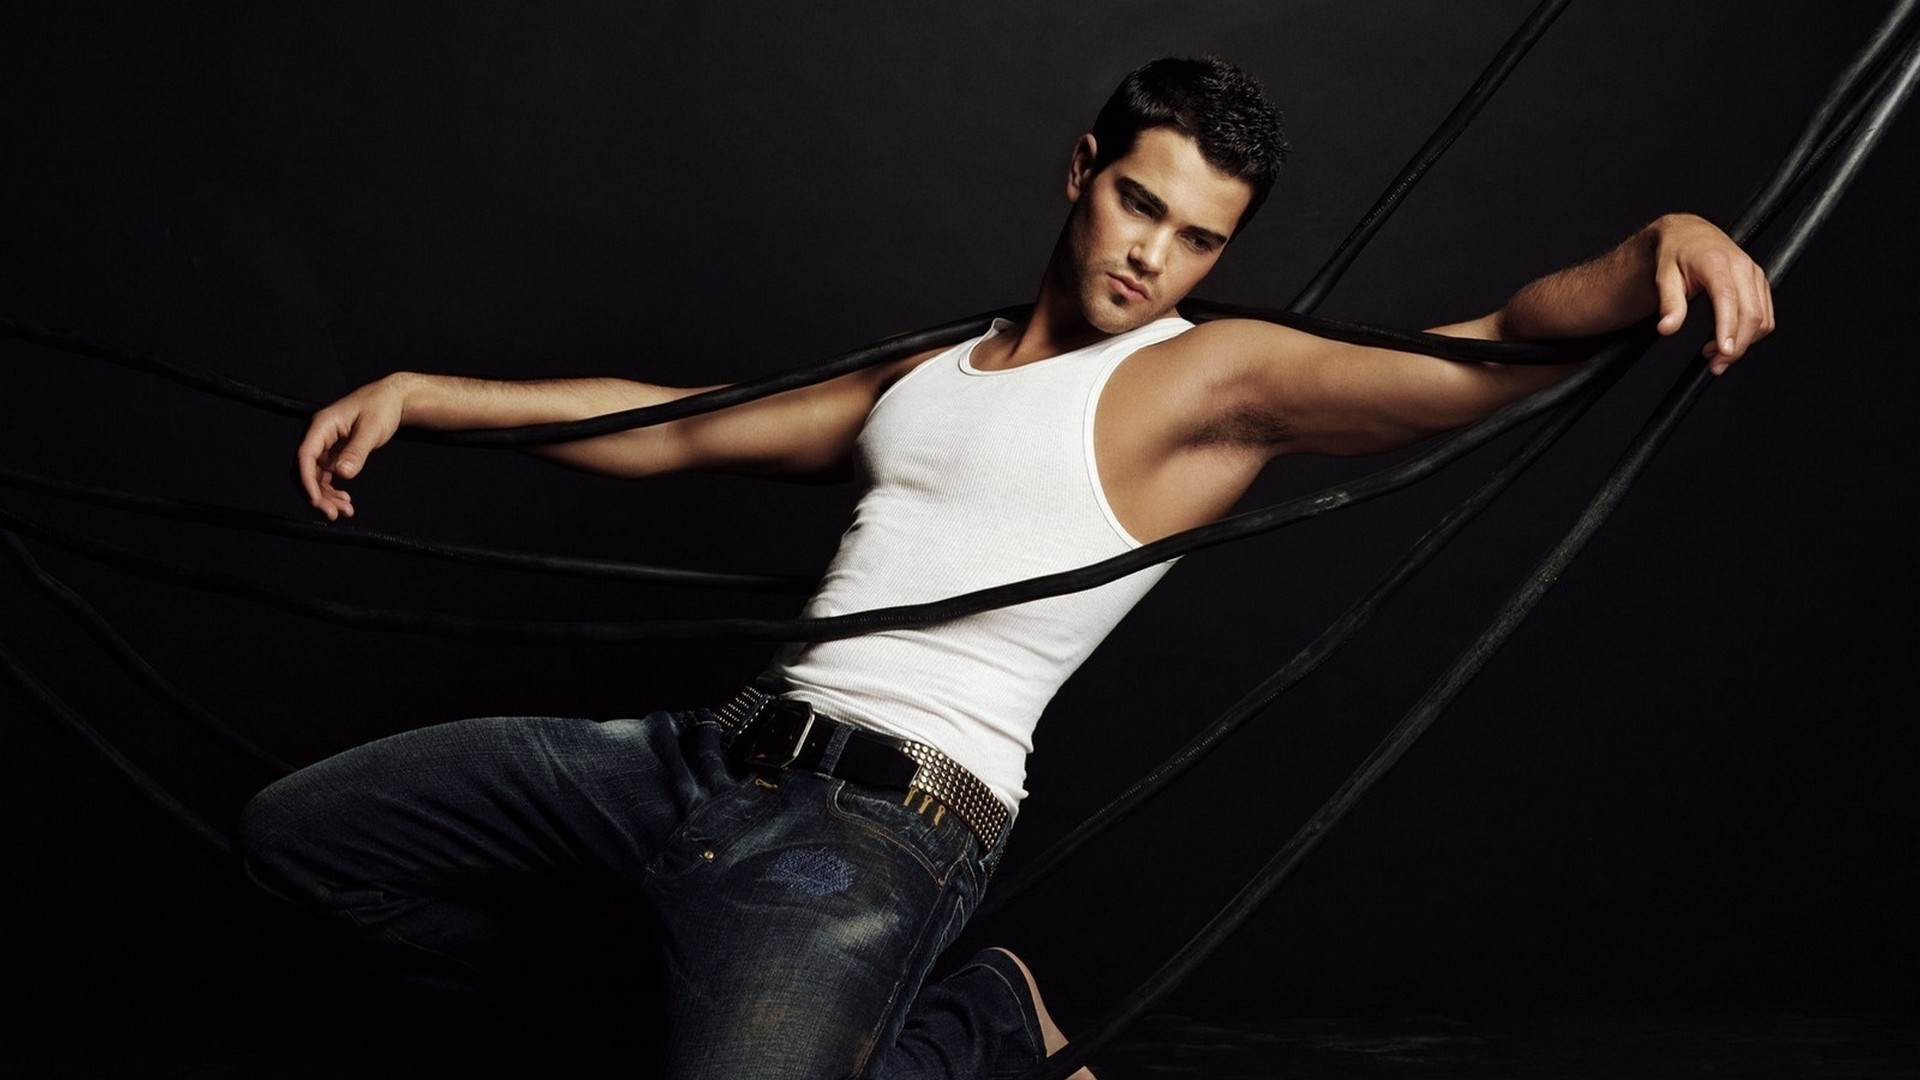 Image: Male, guy, brunet, person, actor, Jesse Metcalfe, t-shirt, white jeans, dark background